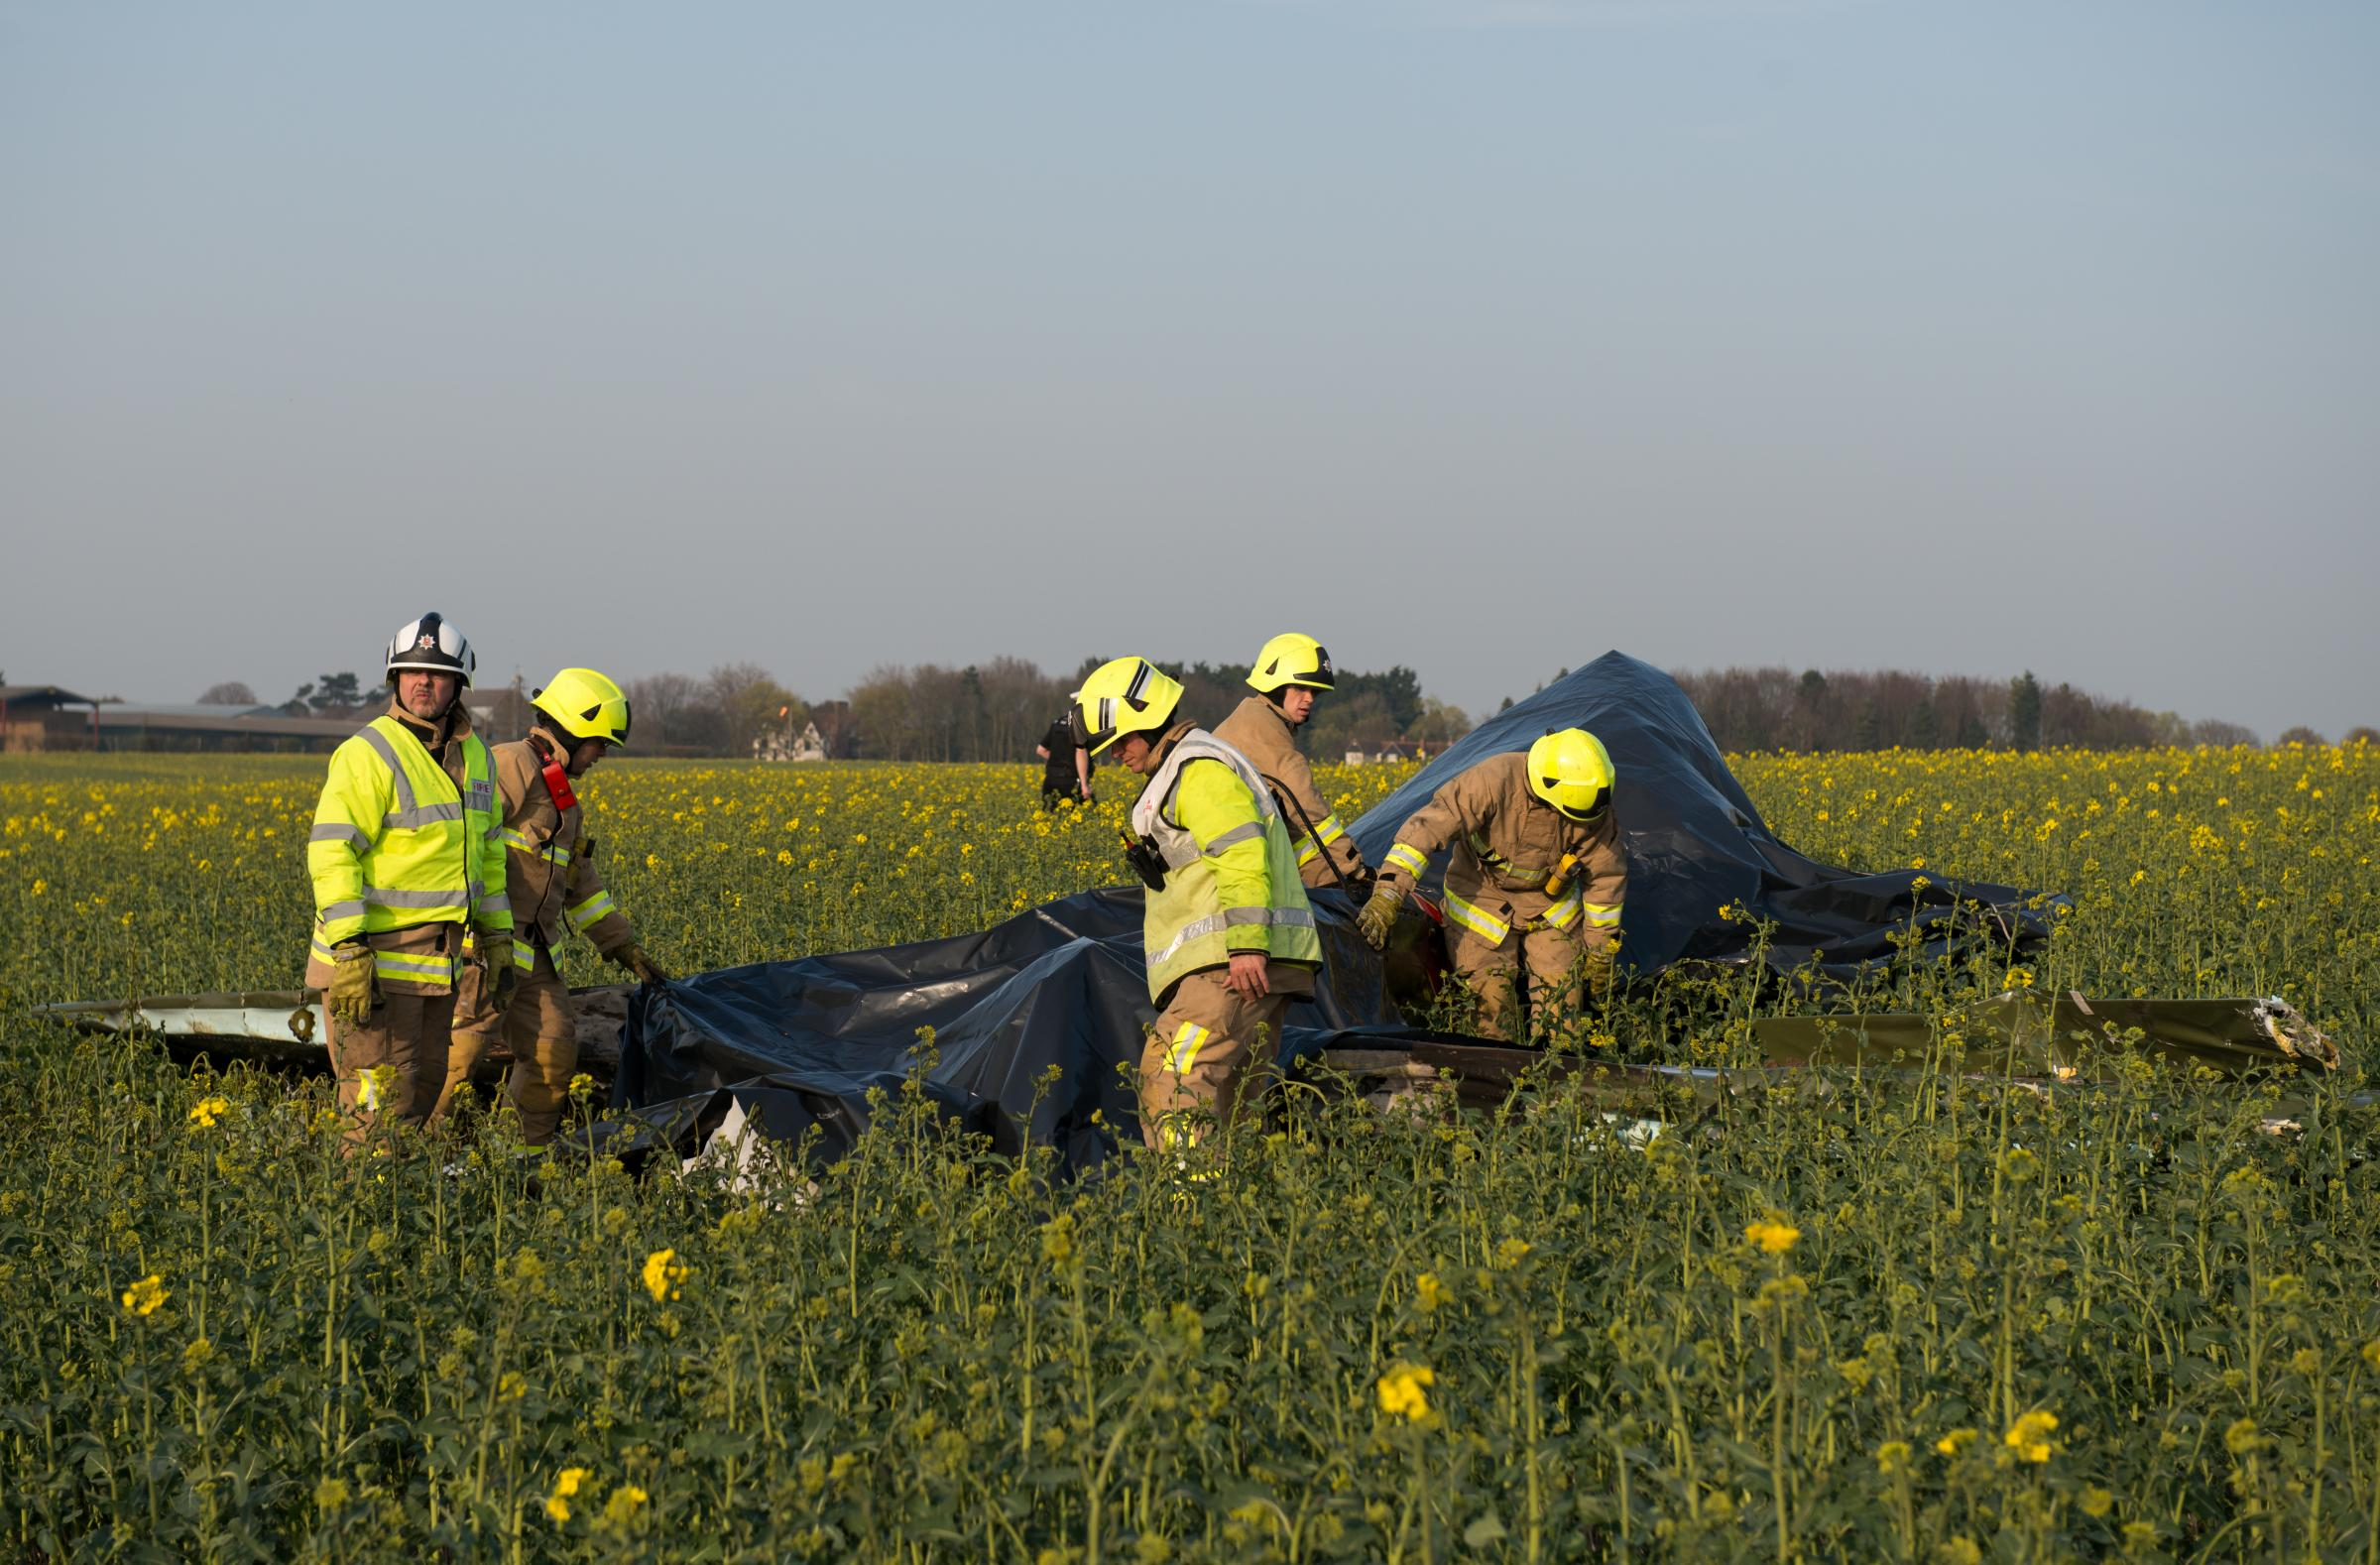 Other man killed in plane crash confirmed as experienced BA pilot